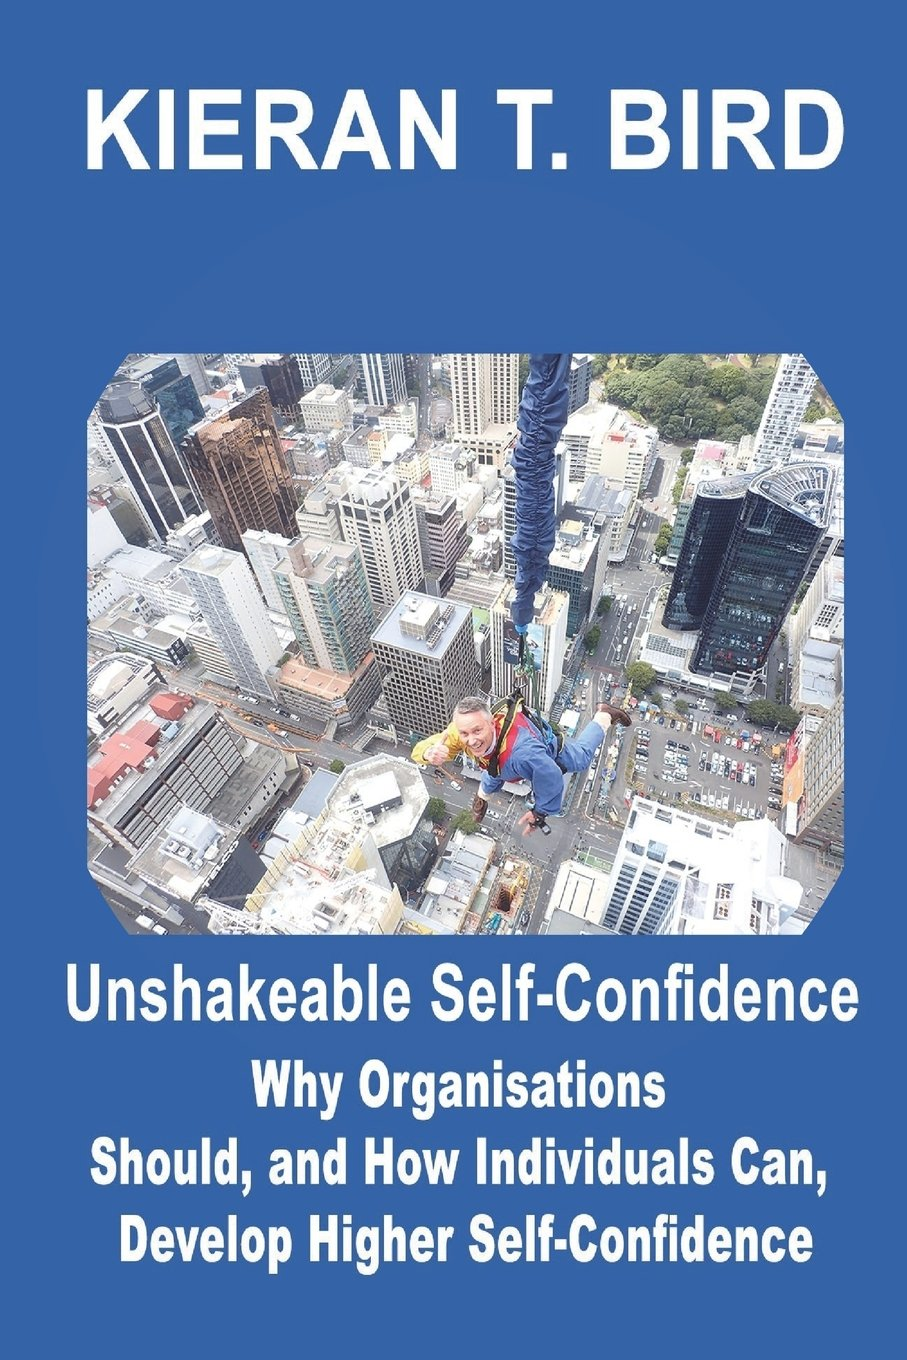 Unshakeable Self-Confidence: Why Organisations Should, and How Individuals Can, Develop Higher Self-Confidence PDF